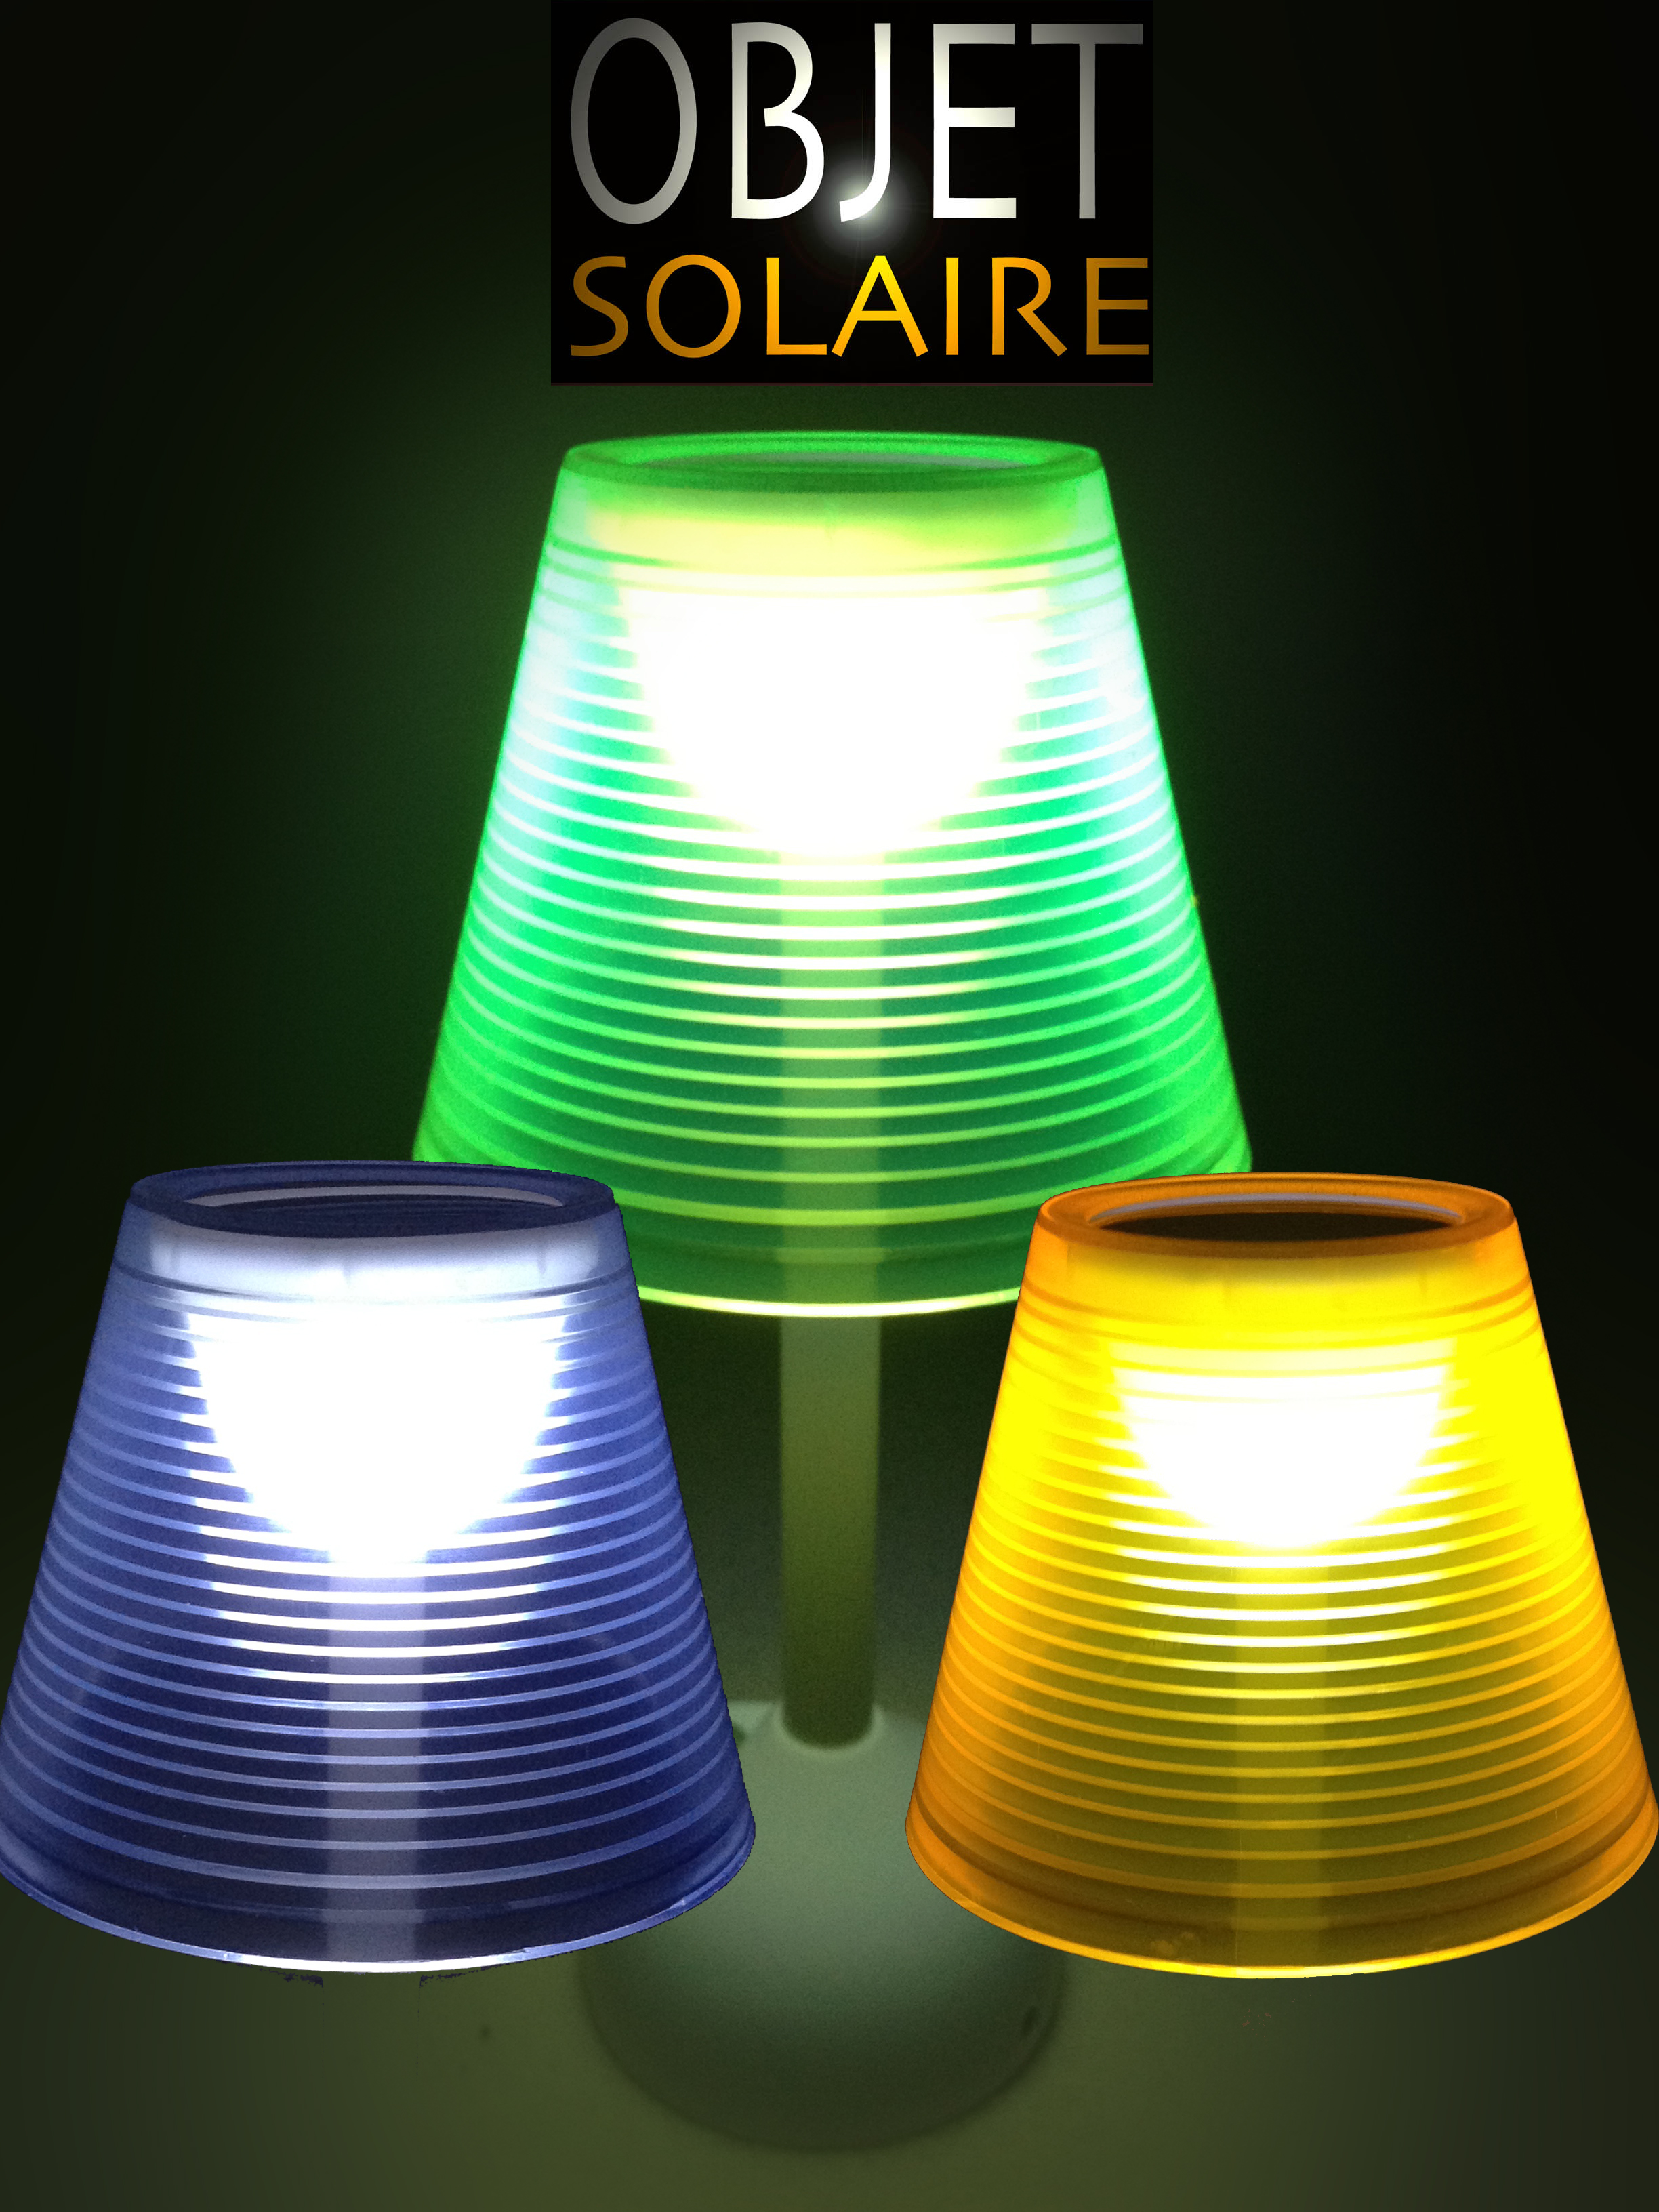 lampe solaire et usb lampes solaires decoratives table. Black Bedroom Furniture Sets. Home Design Ideas